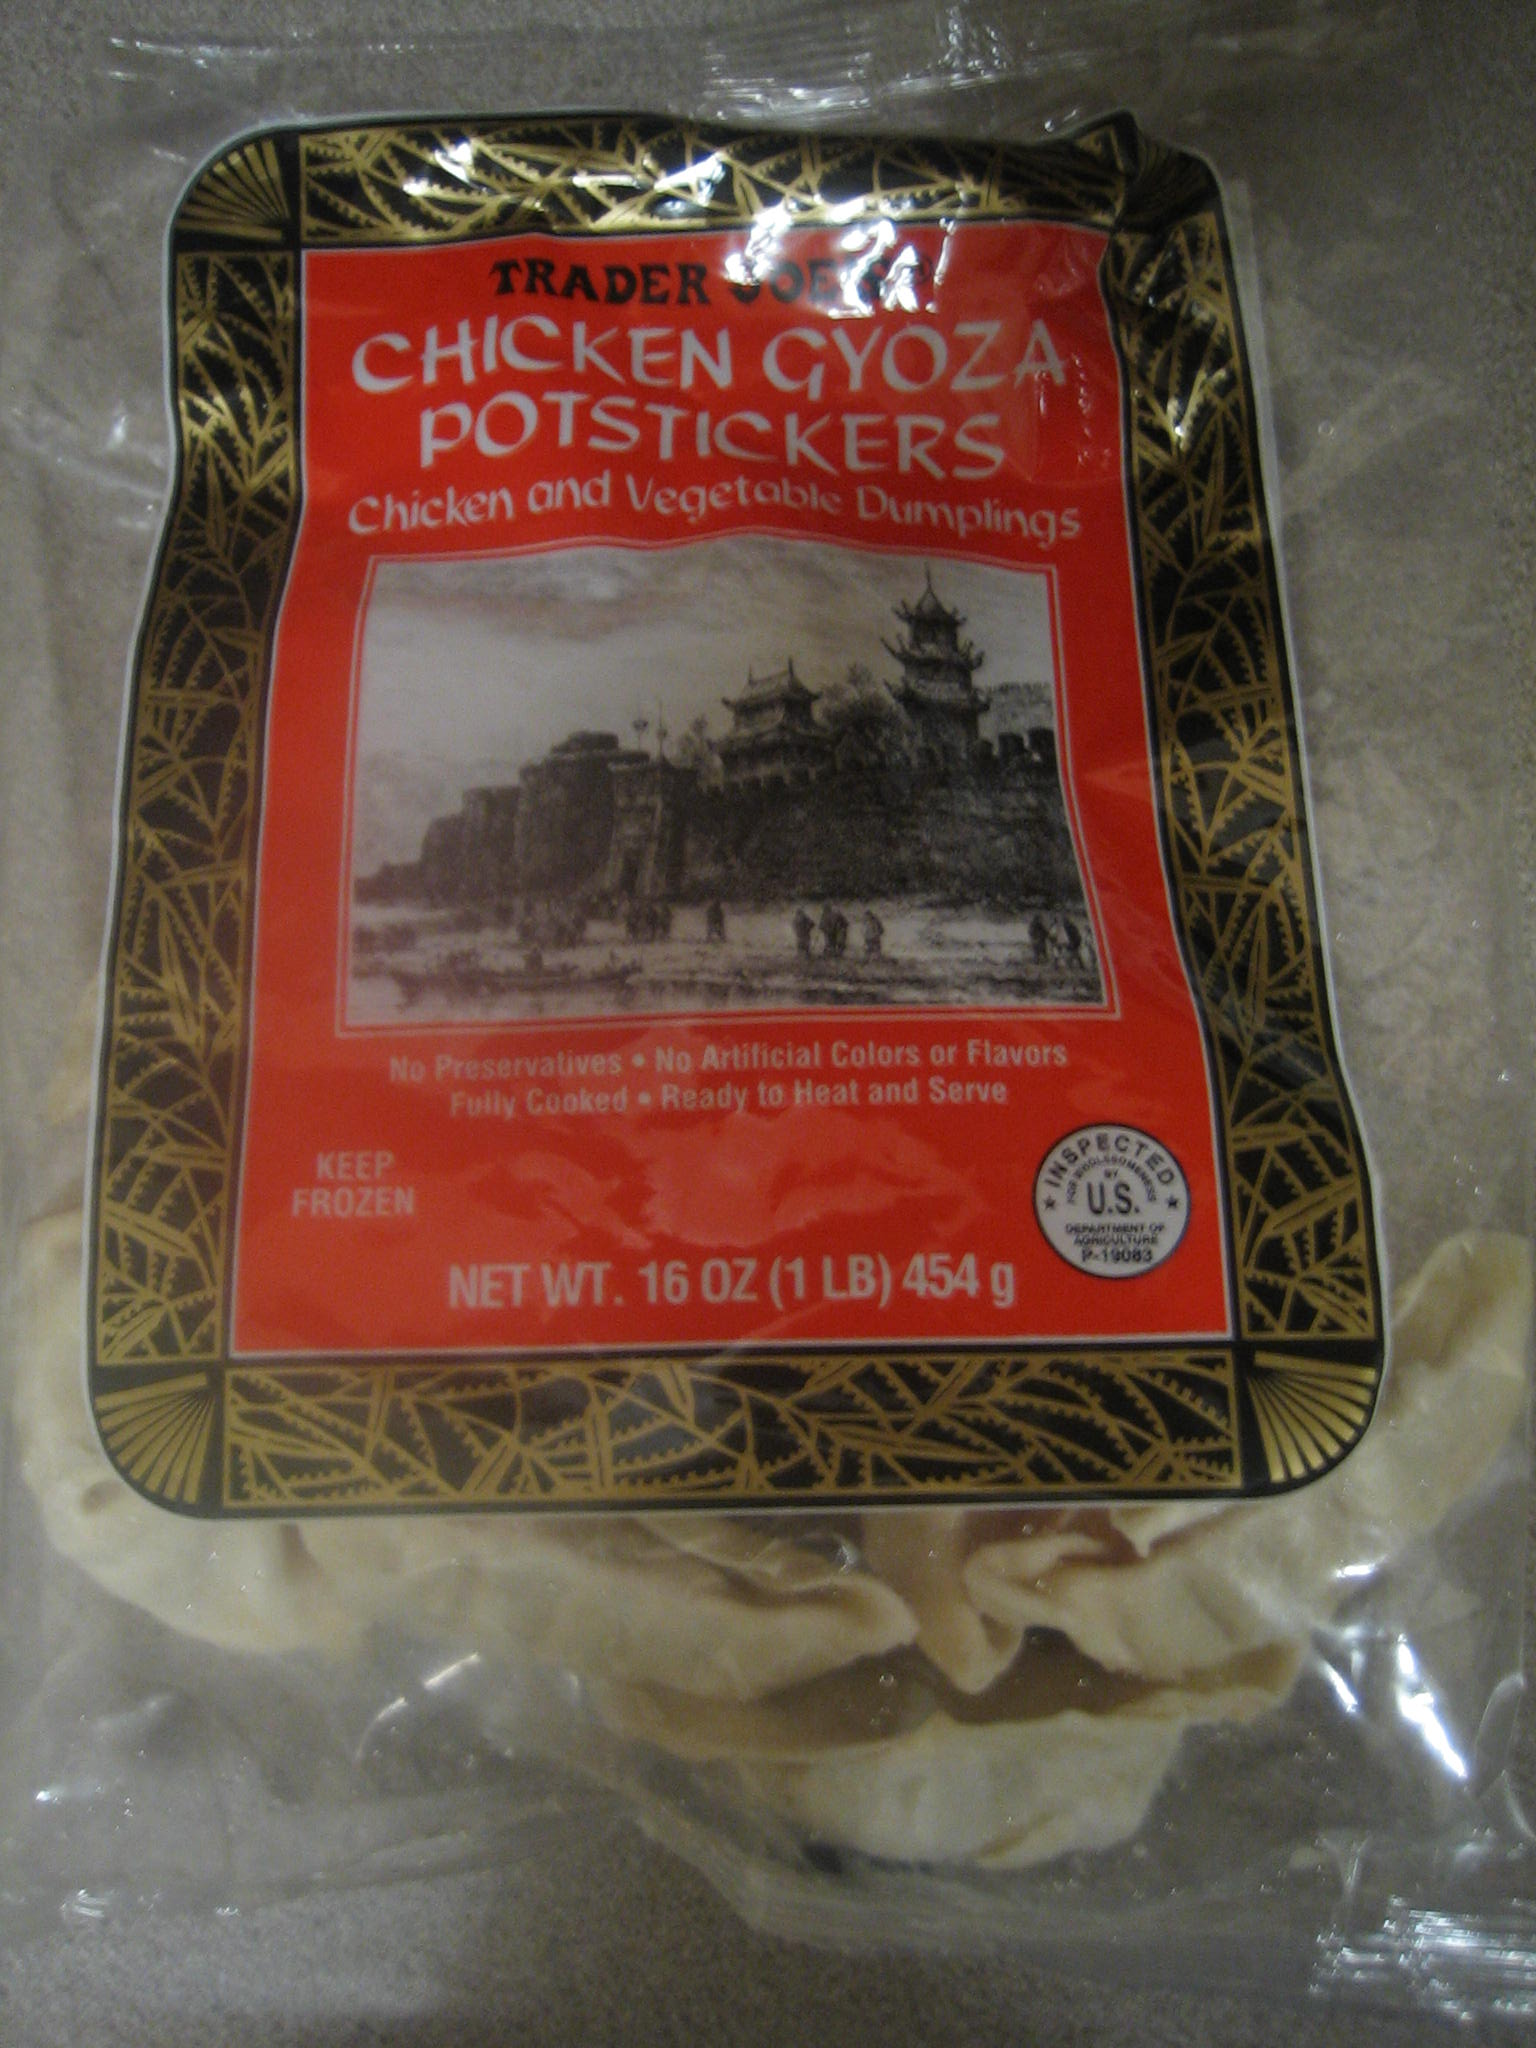 Trader Joe's Chicken Gyoza Pot Stickers